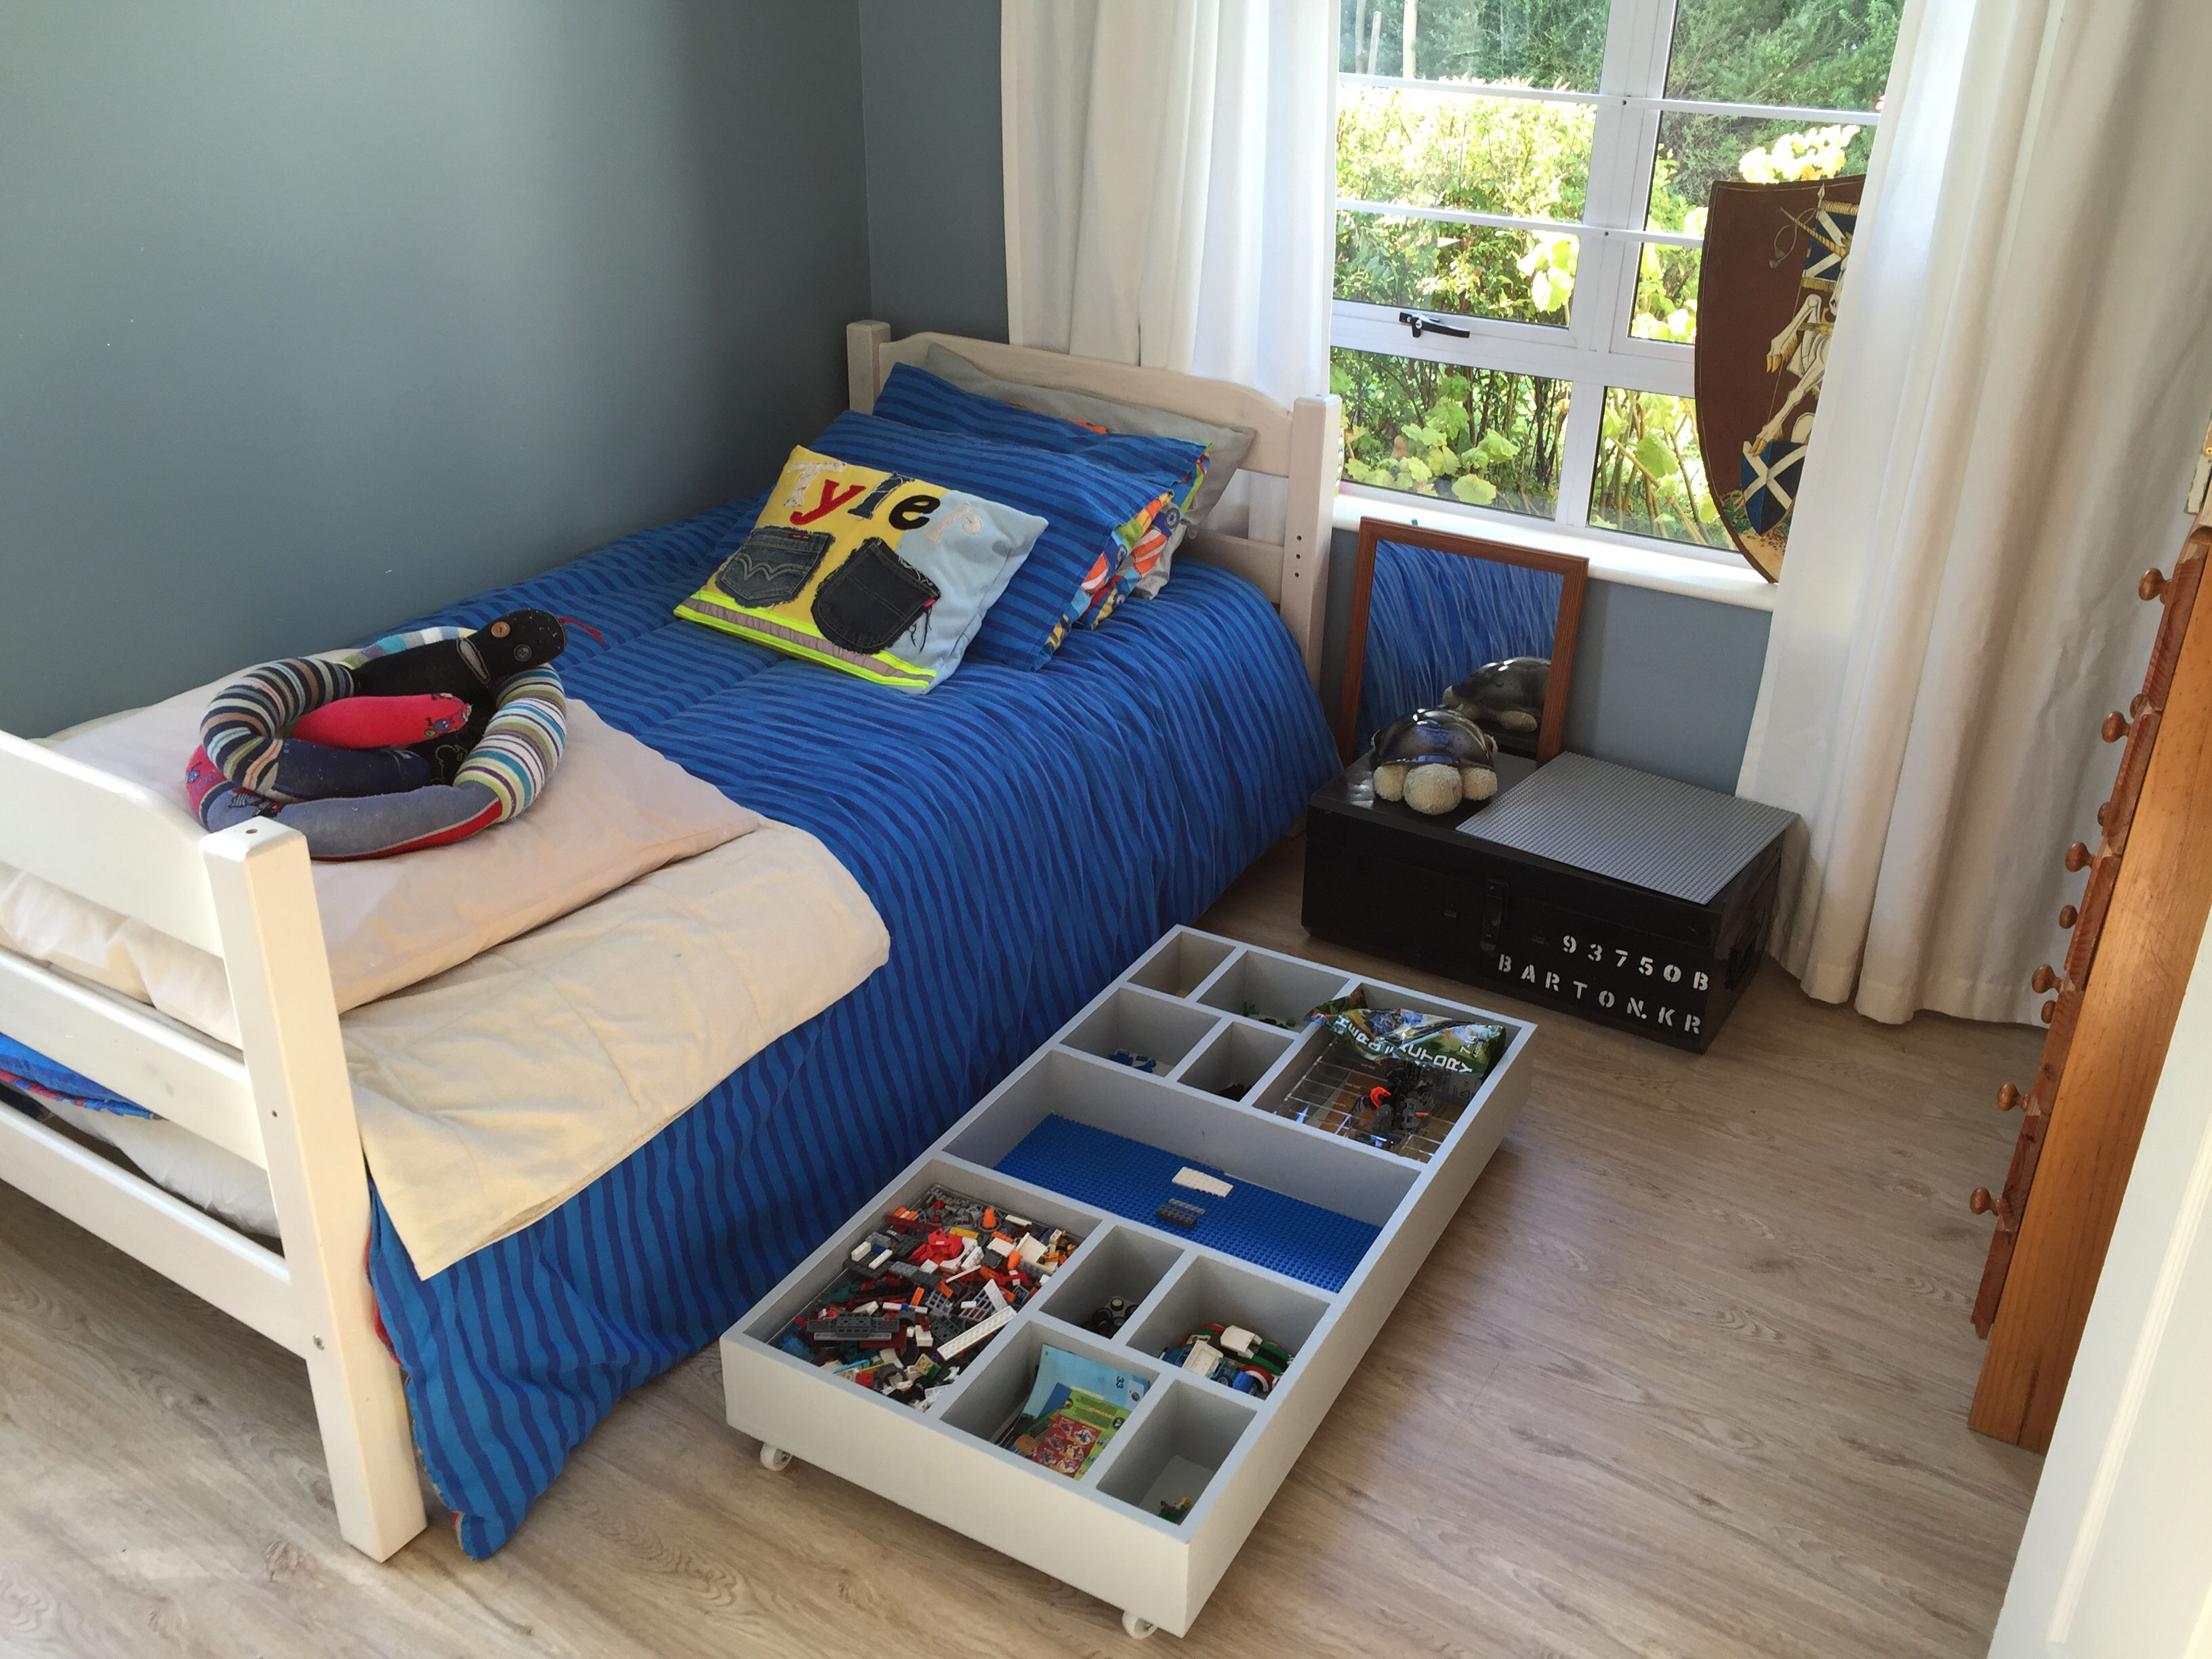 Simple Lego Storage Under The Bed